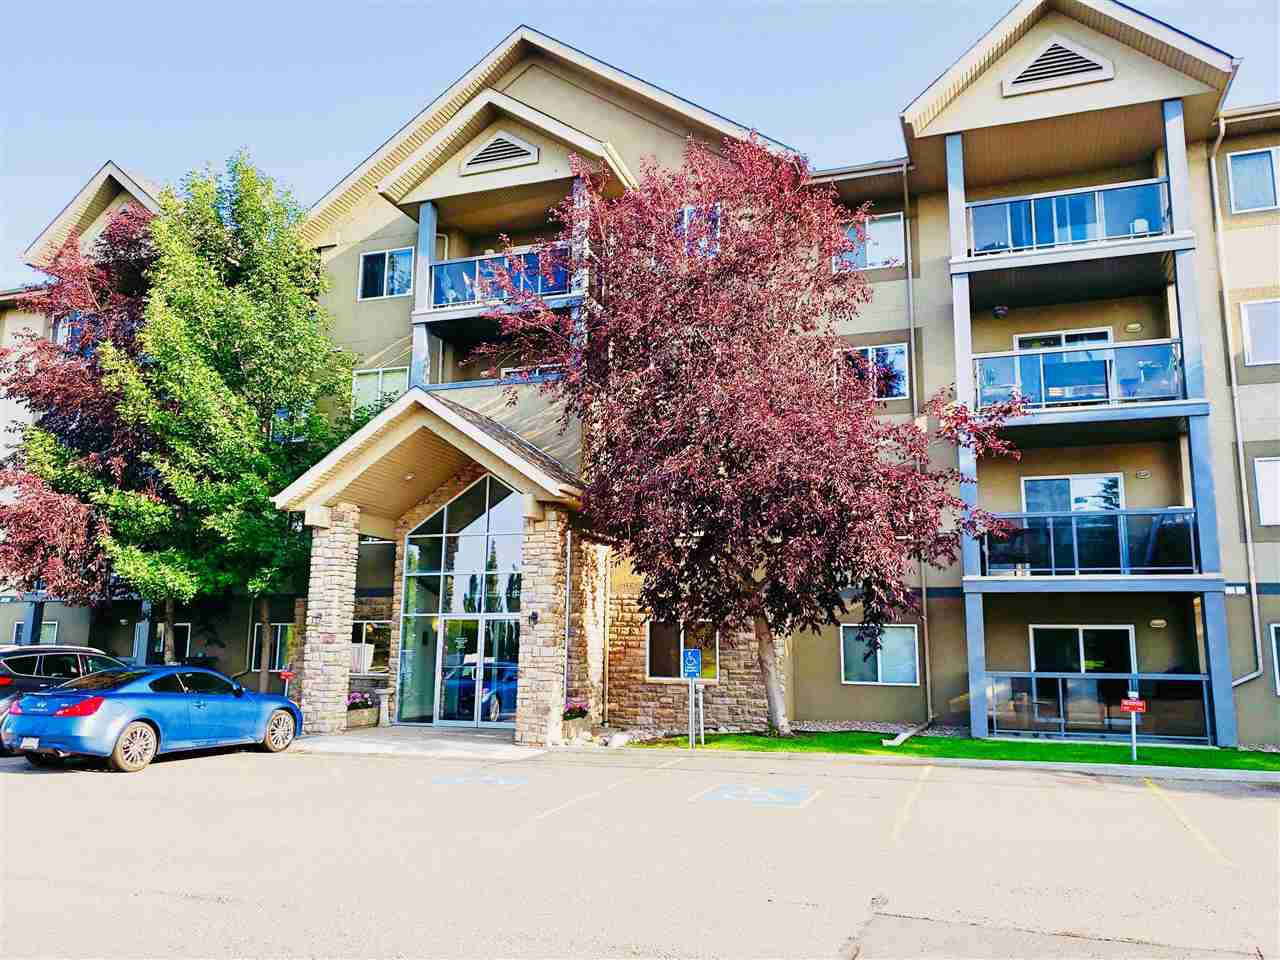 Main Photo: 203 279 SUDER GREENS Drive in Edmonton: Zone 58 Condo for sale : MLS®# E4168042